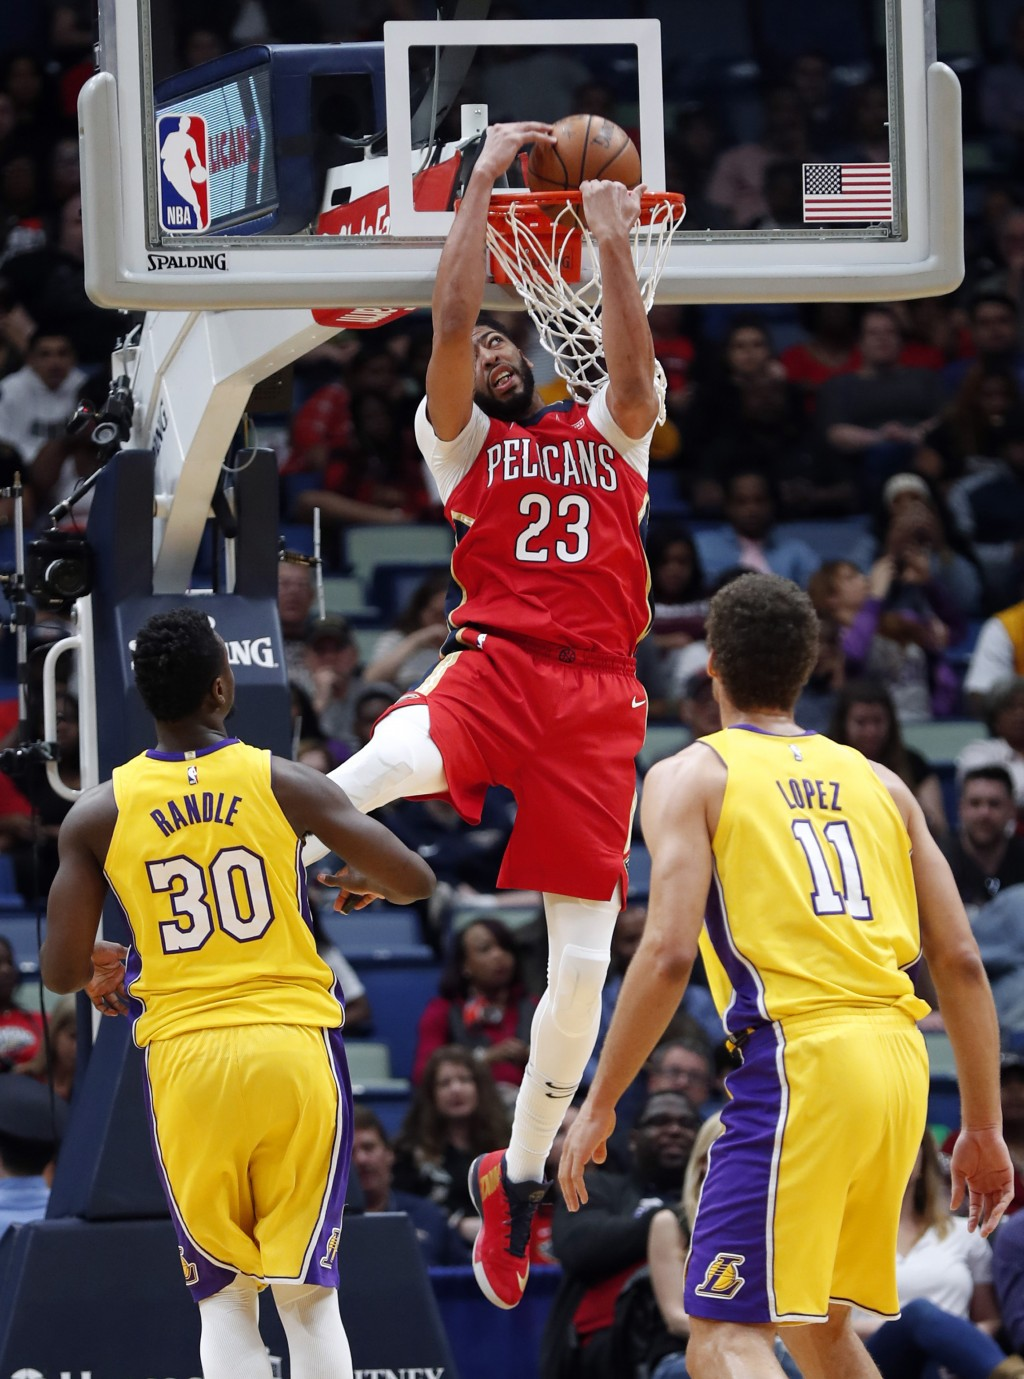 New Orleans Pelicans forward Anthony Davis (23) dunks as Los Angeles Lakers forward Julius Randle (30) and center Brook Lopez (11) watch during the fi